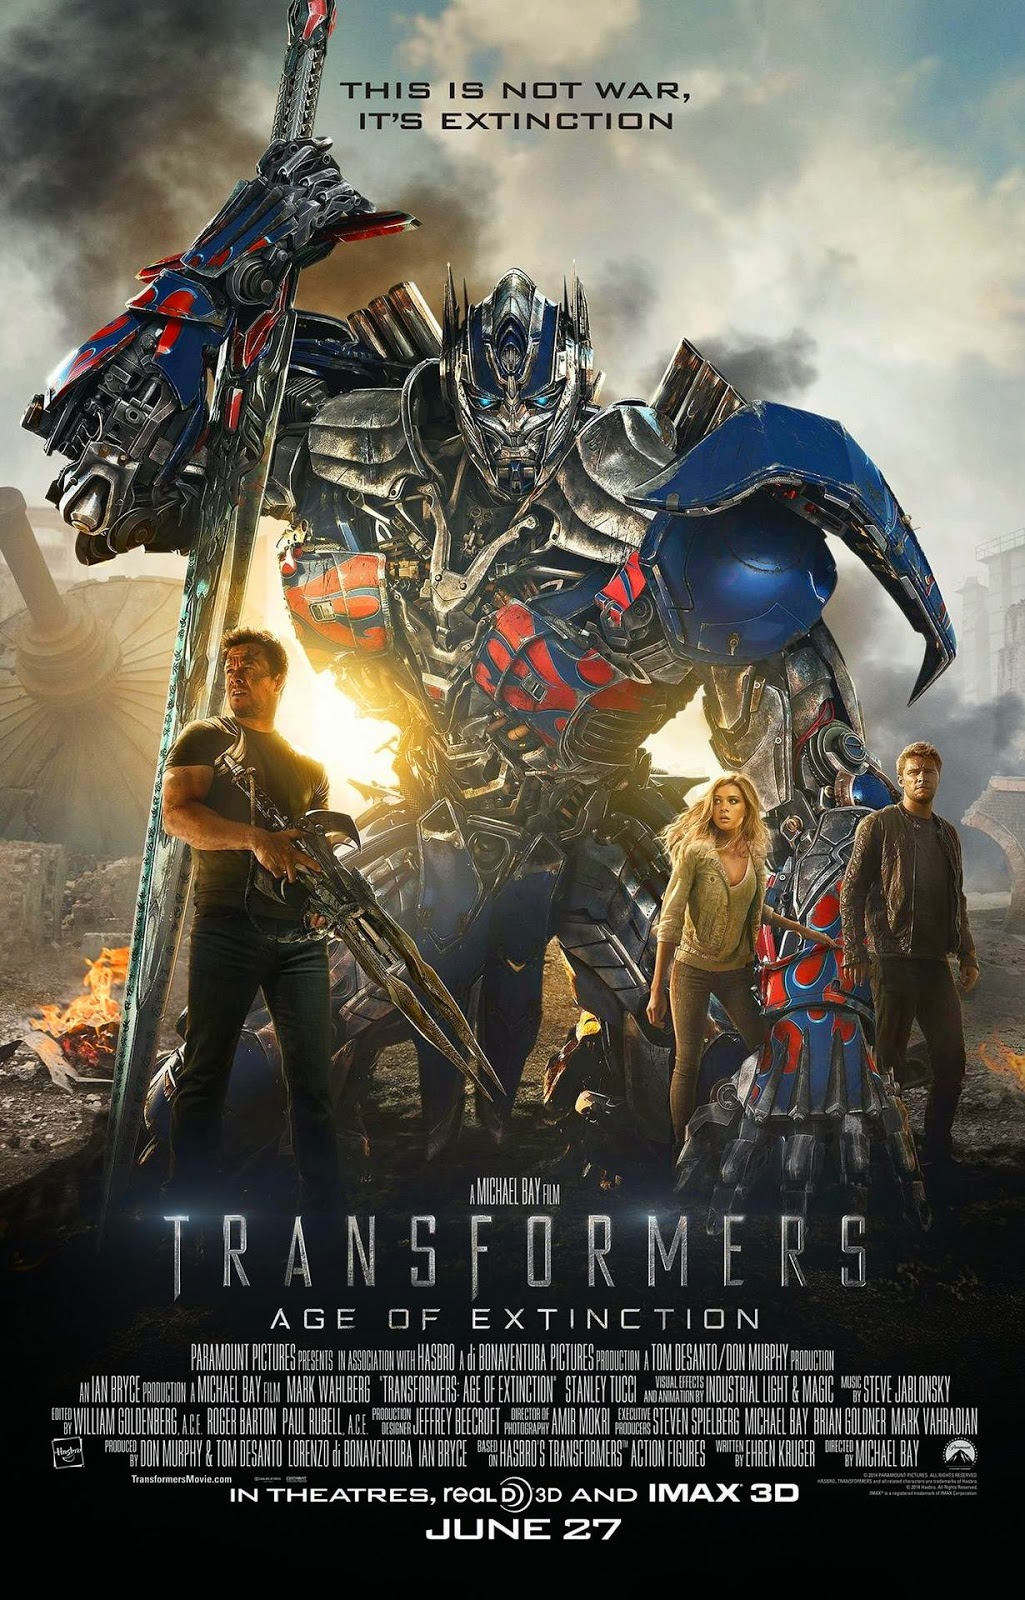 Transformers Age of Extinction in 3D